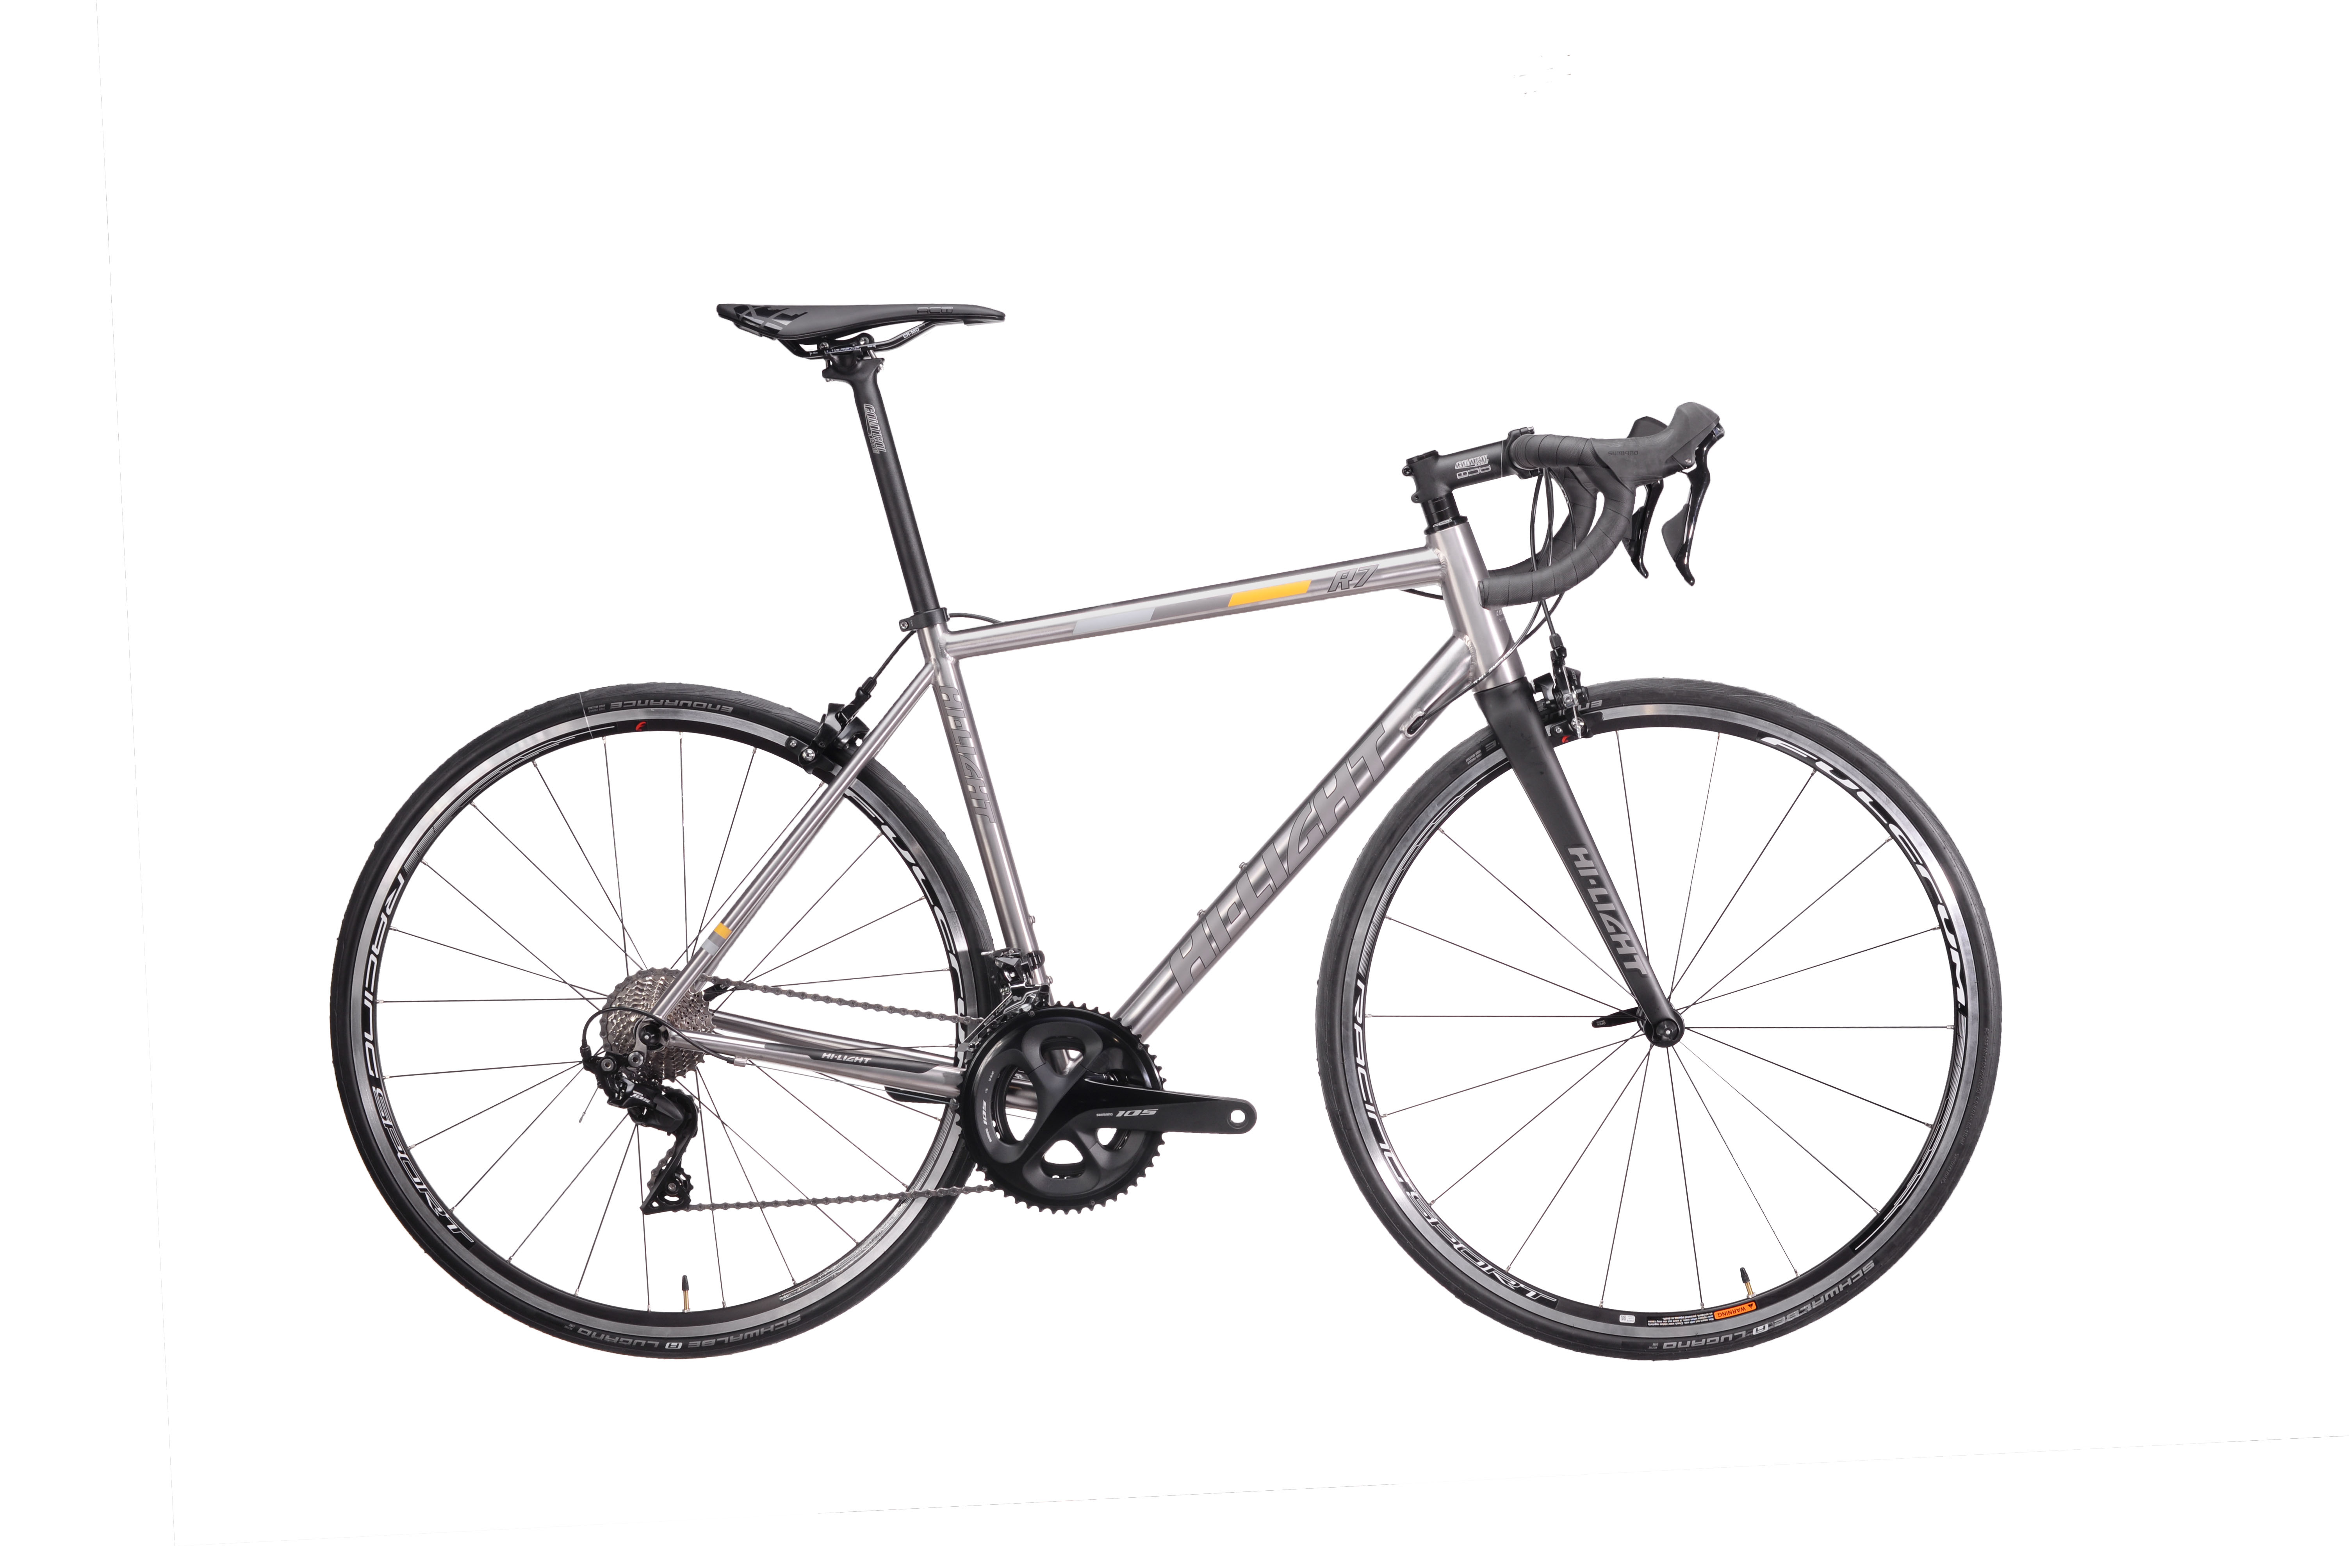 R7 TITANIUM ROAD BIKE